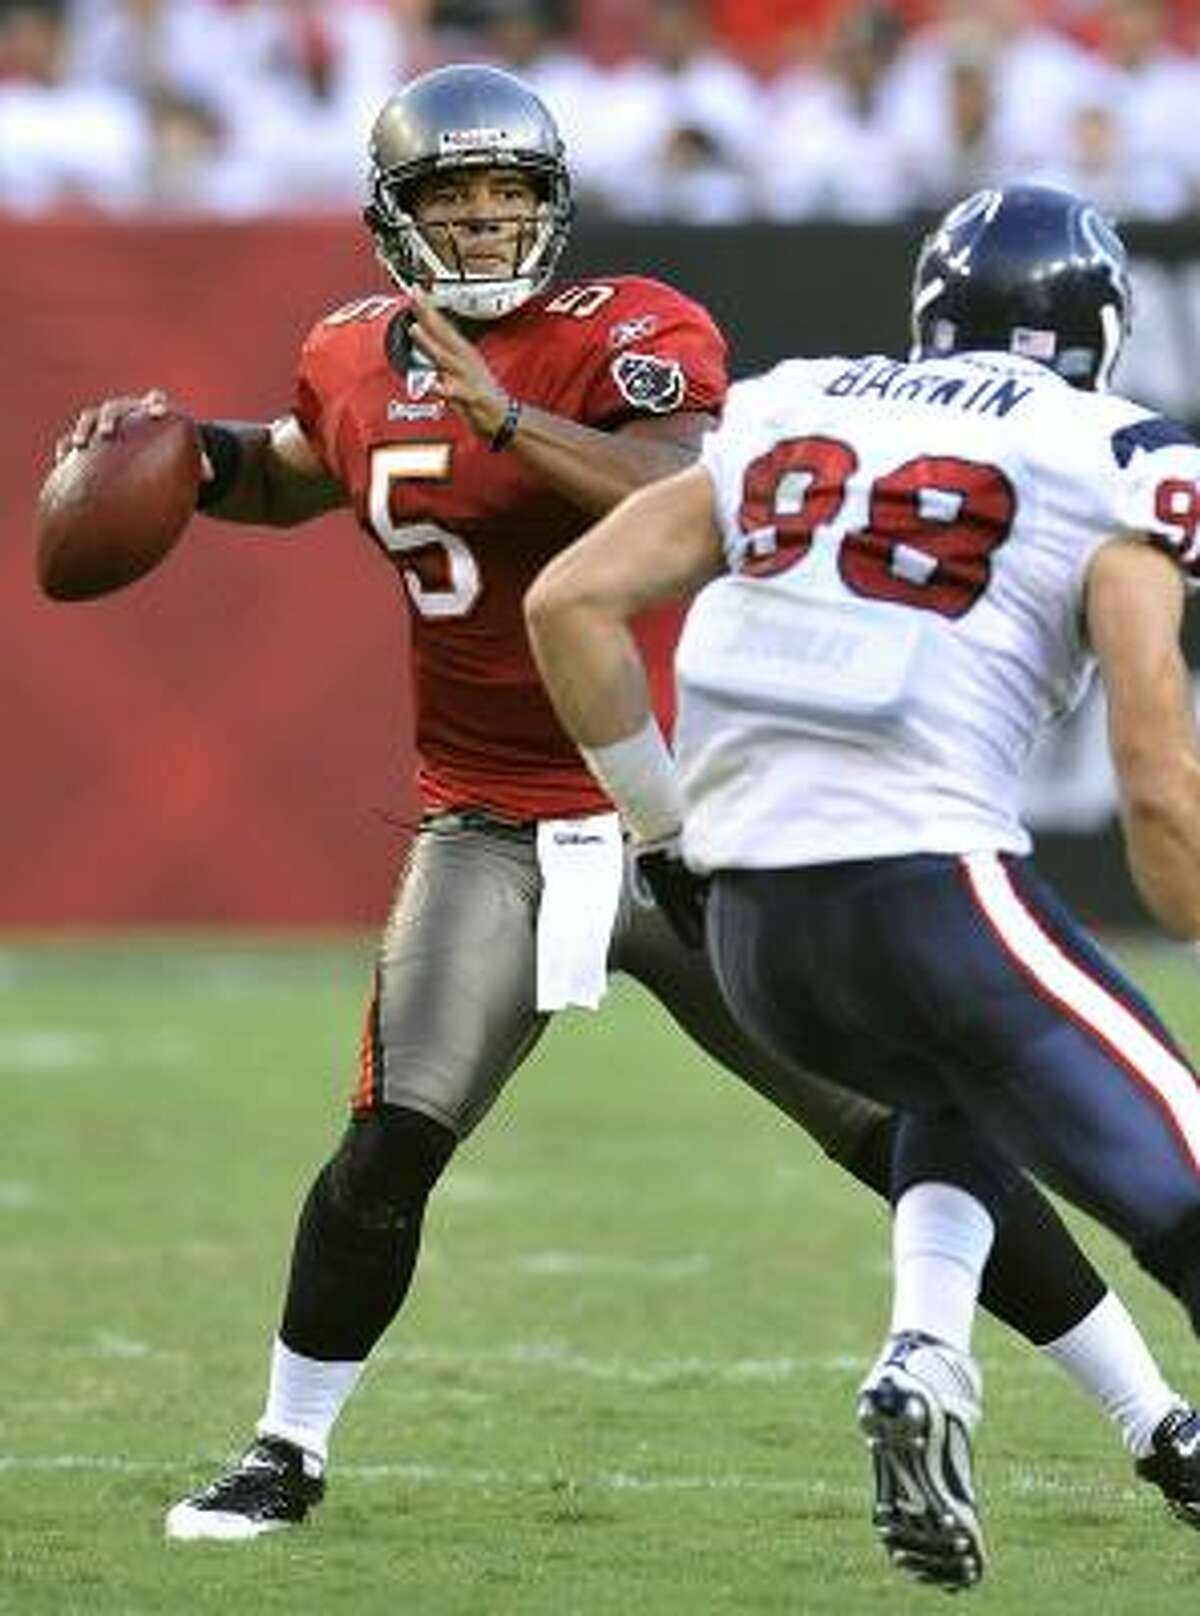 Tampa Bay quarterback Josh Freeman prepares to pass while being chased by Texans defensive end Conner Barwin.